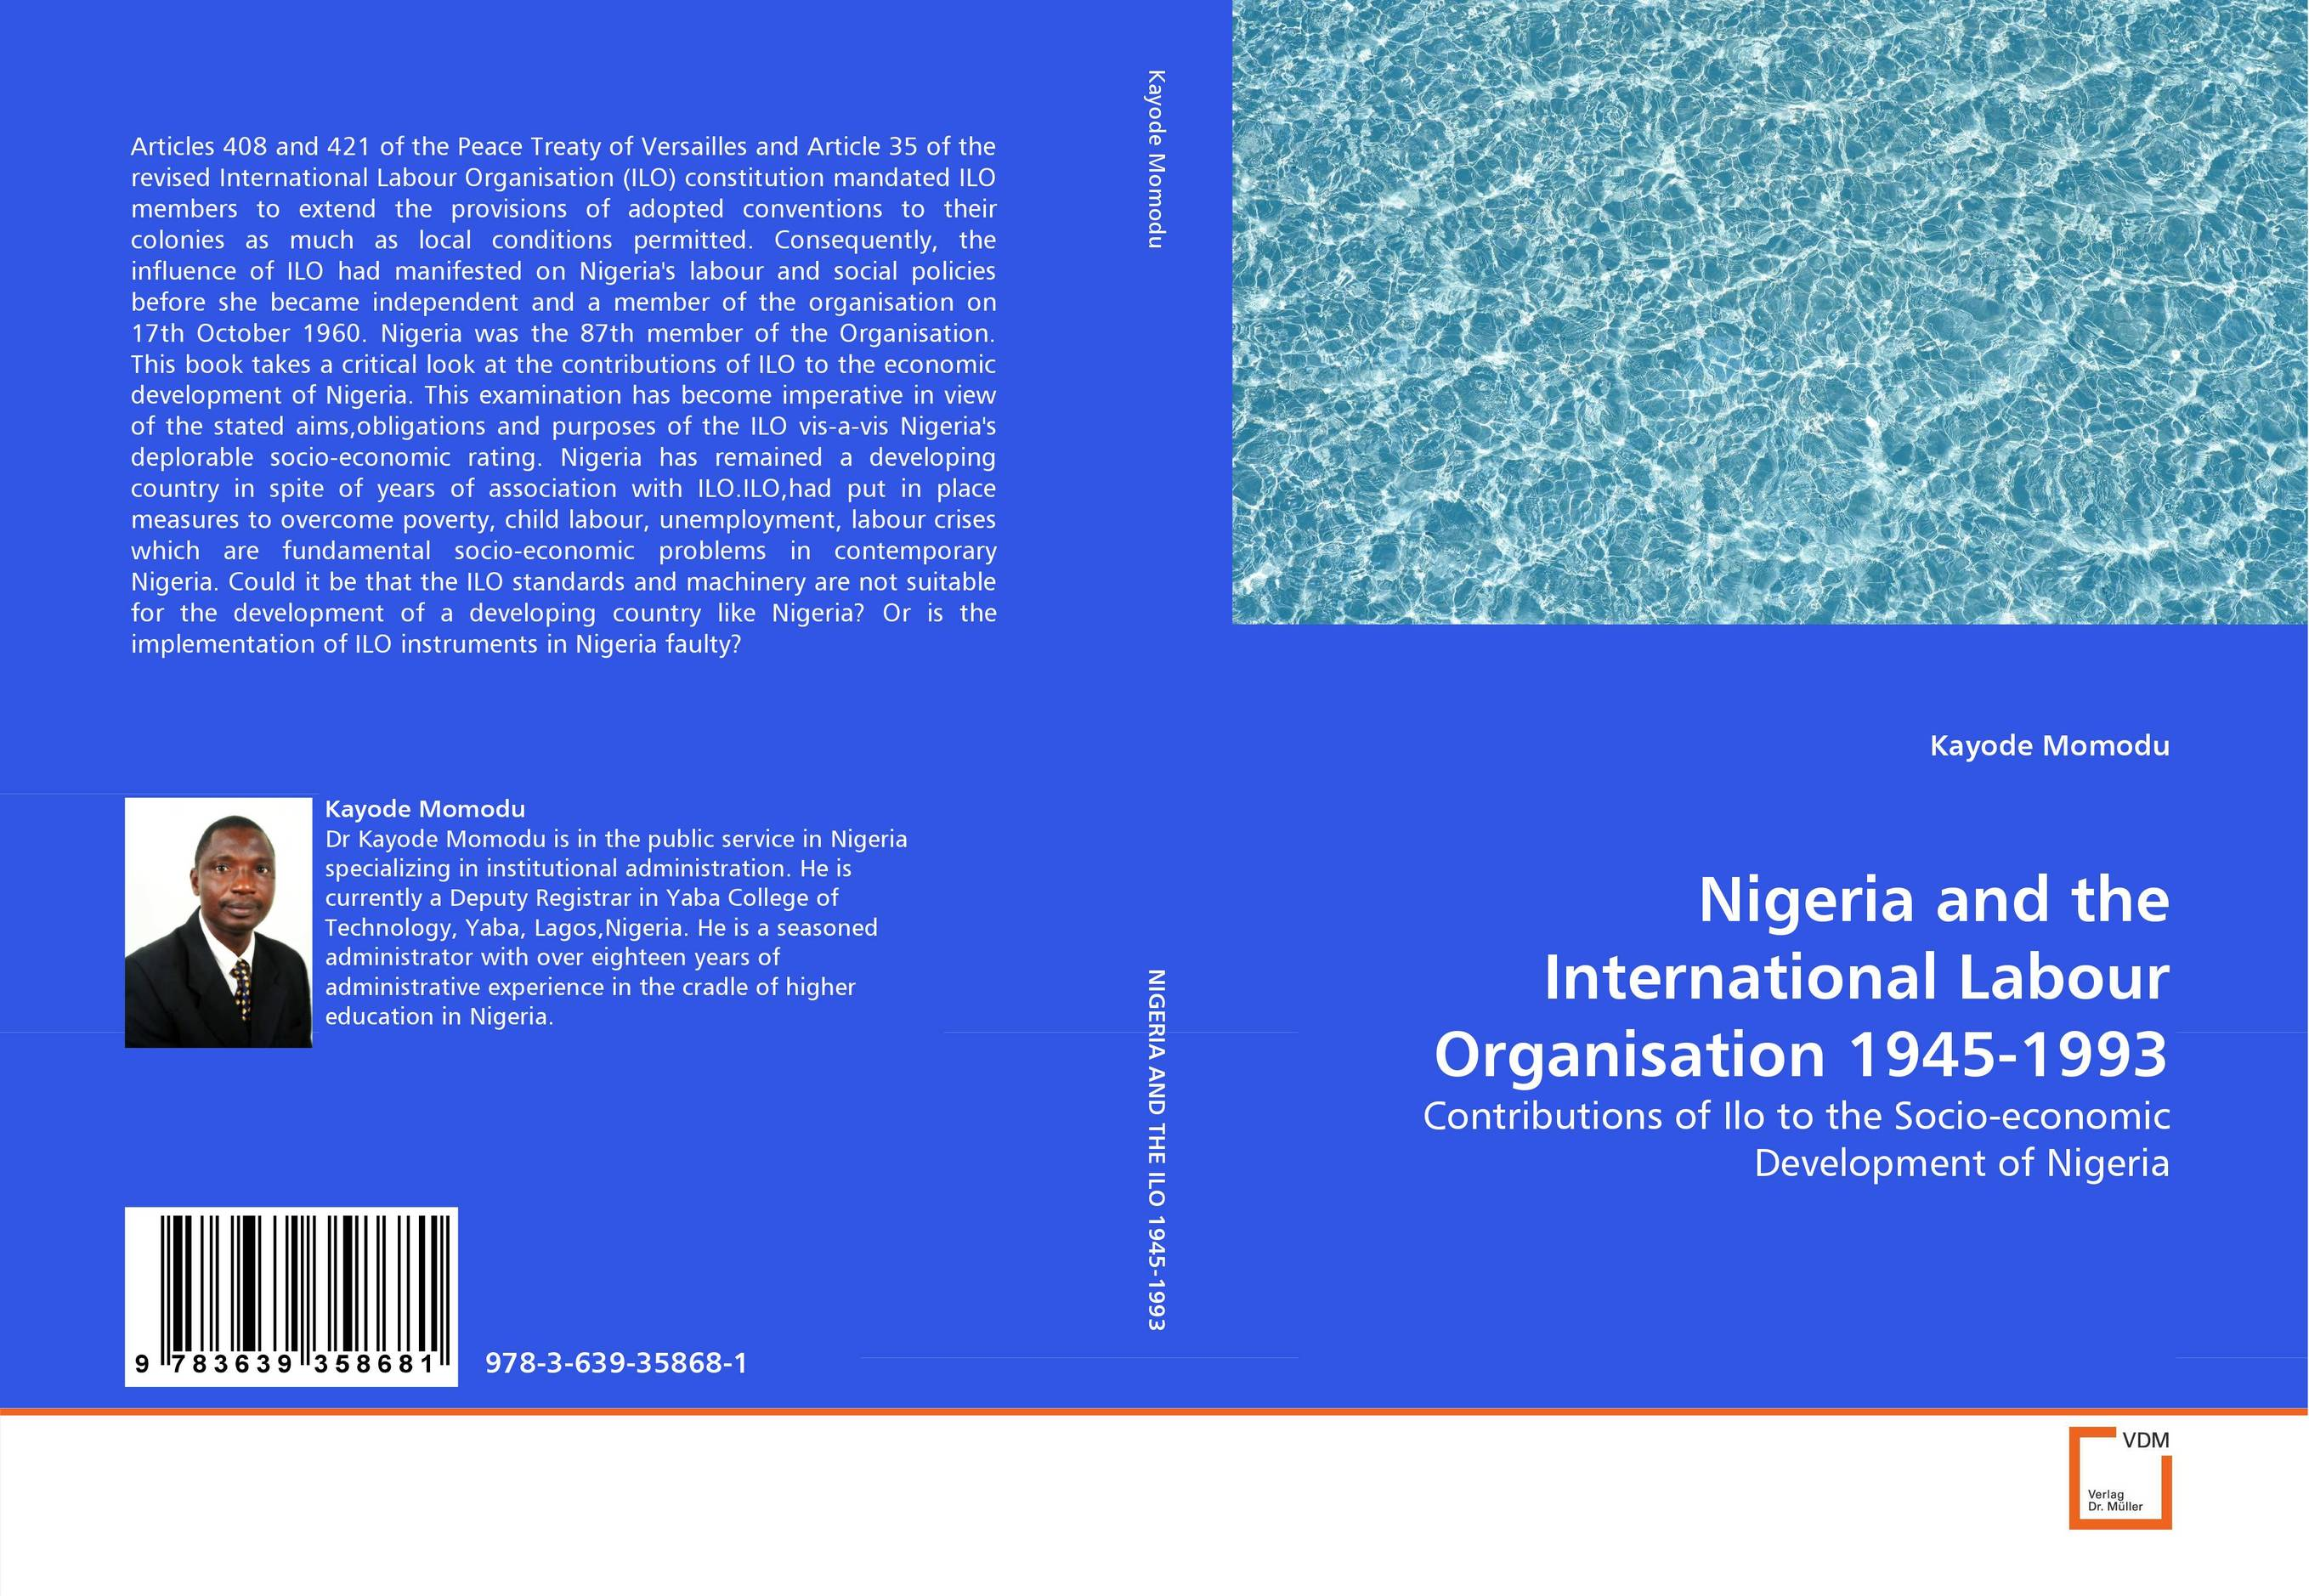 Nigeria and the International Labour Organisation 1945-1993 assessment of on street parking in lokoja nigeria